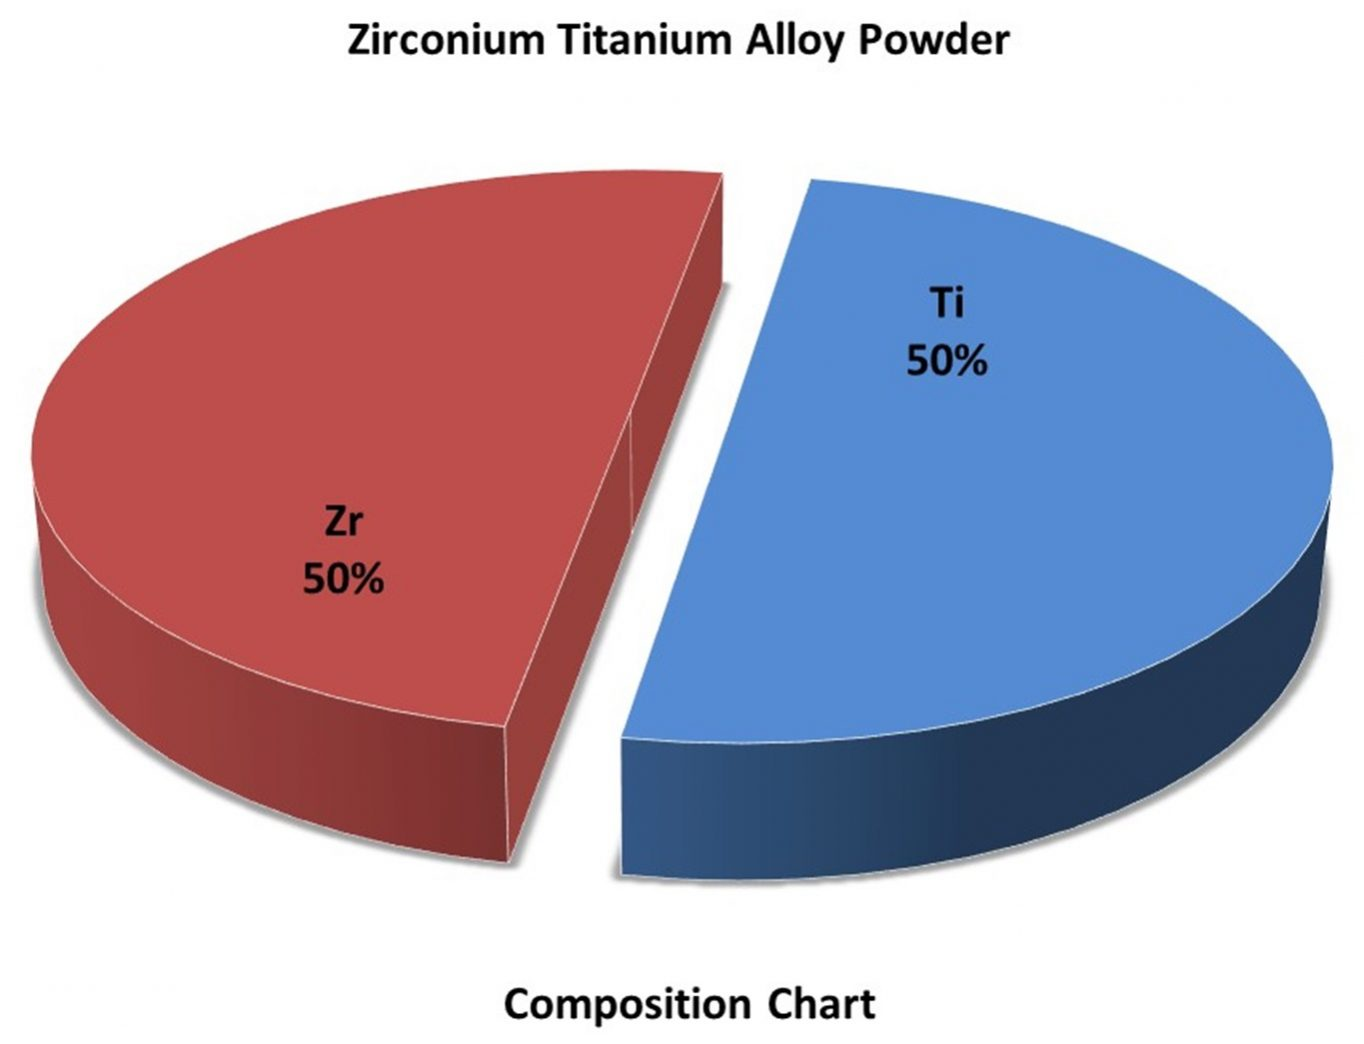 Composition Chart – Zr:Ti Alloy Powder